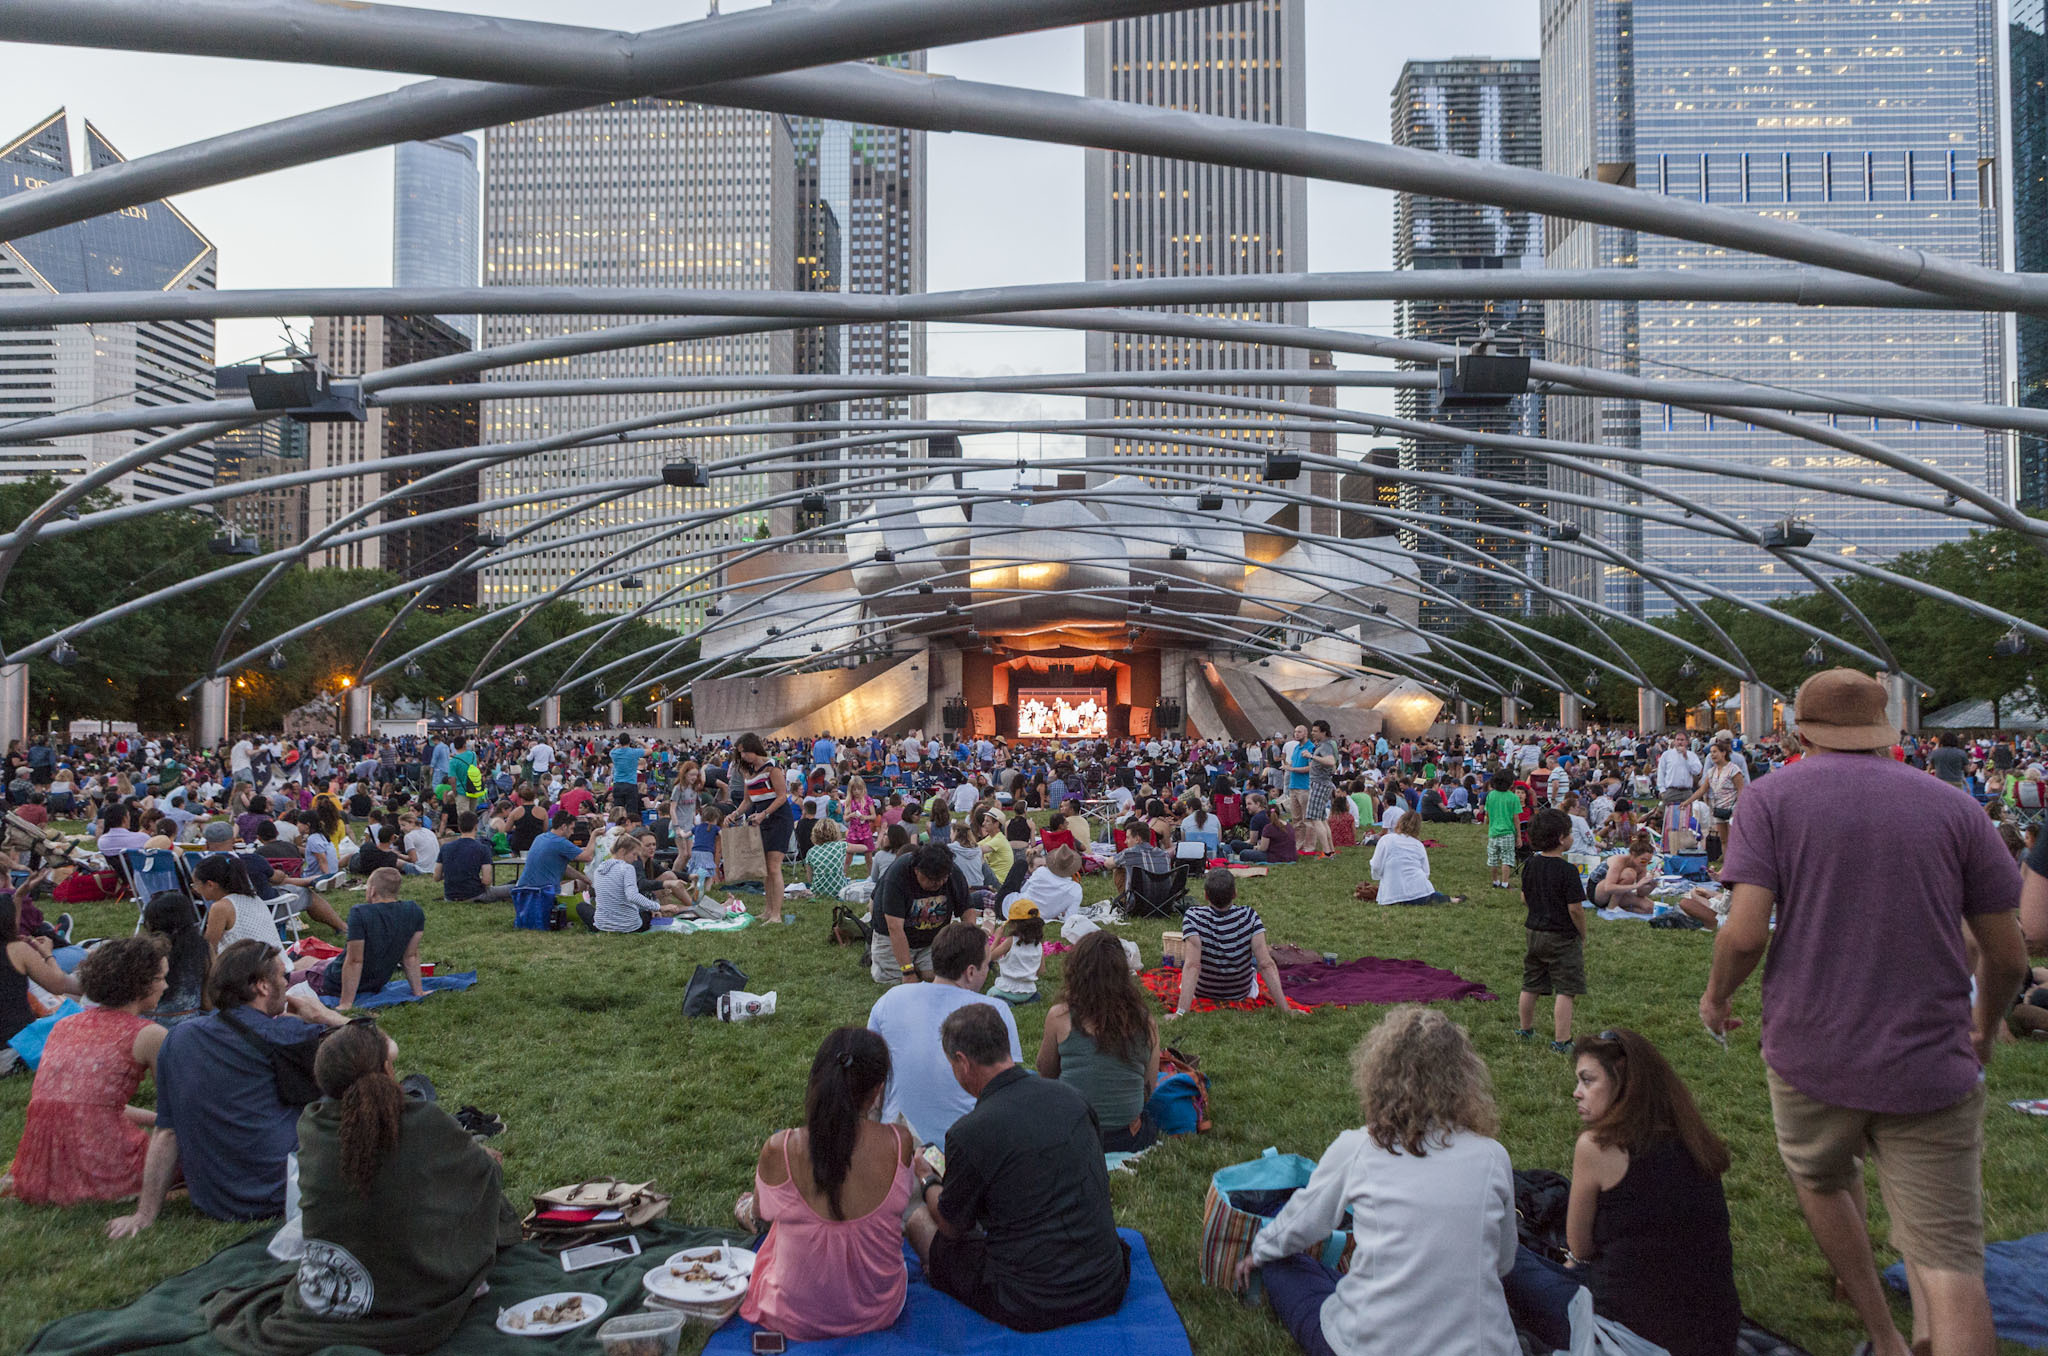 Millennium Park has become the Midwest's top tourist attraction